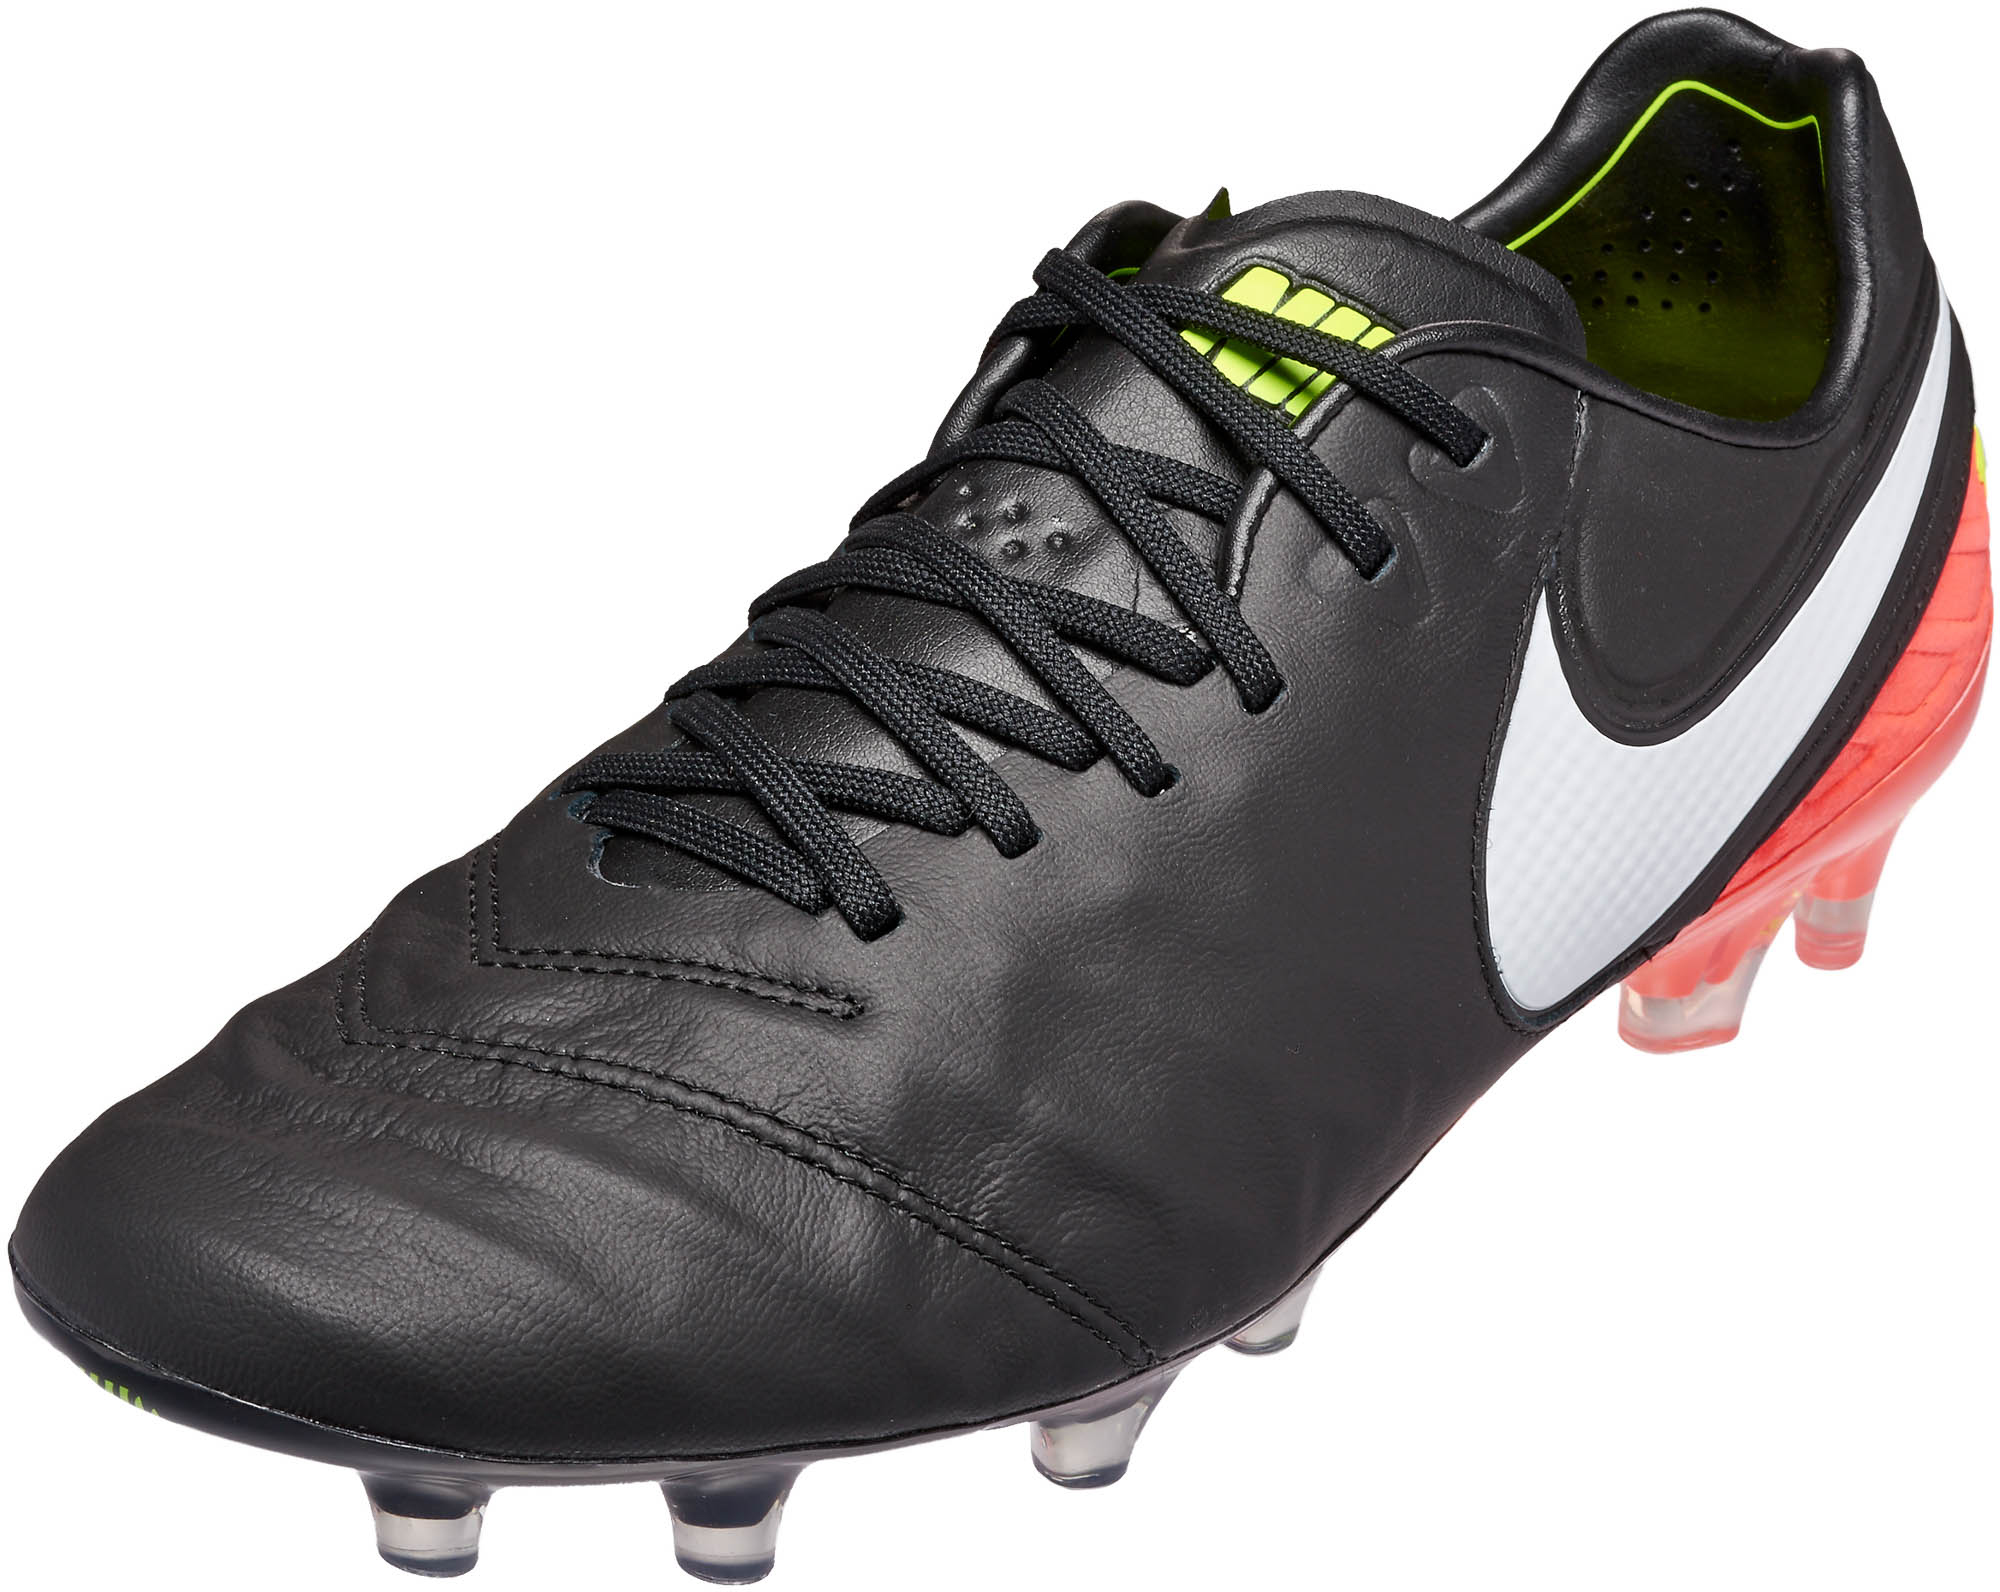 Promover Sip contrabando  Nike Tiempo Legend VI FG - Black and Hyper Orange Nike Tiempo ...